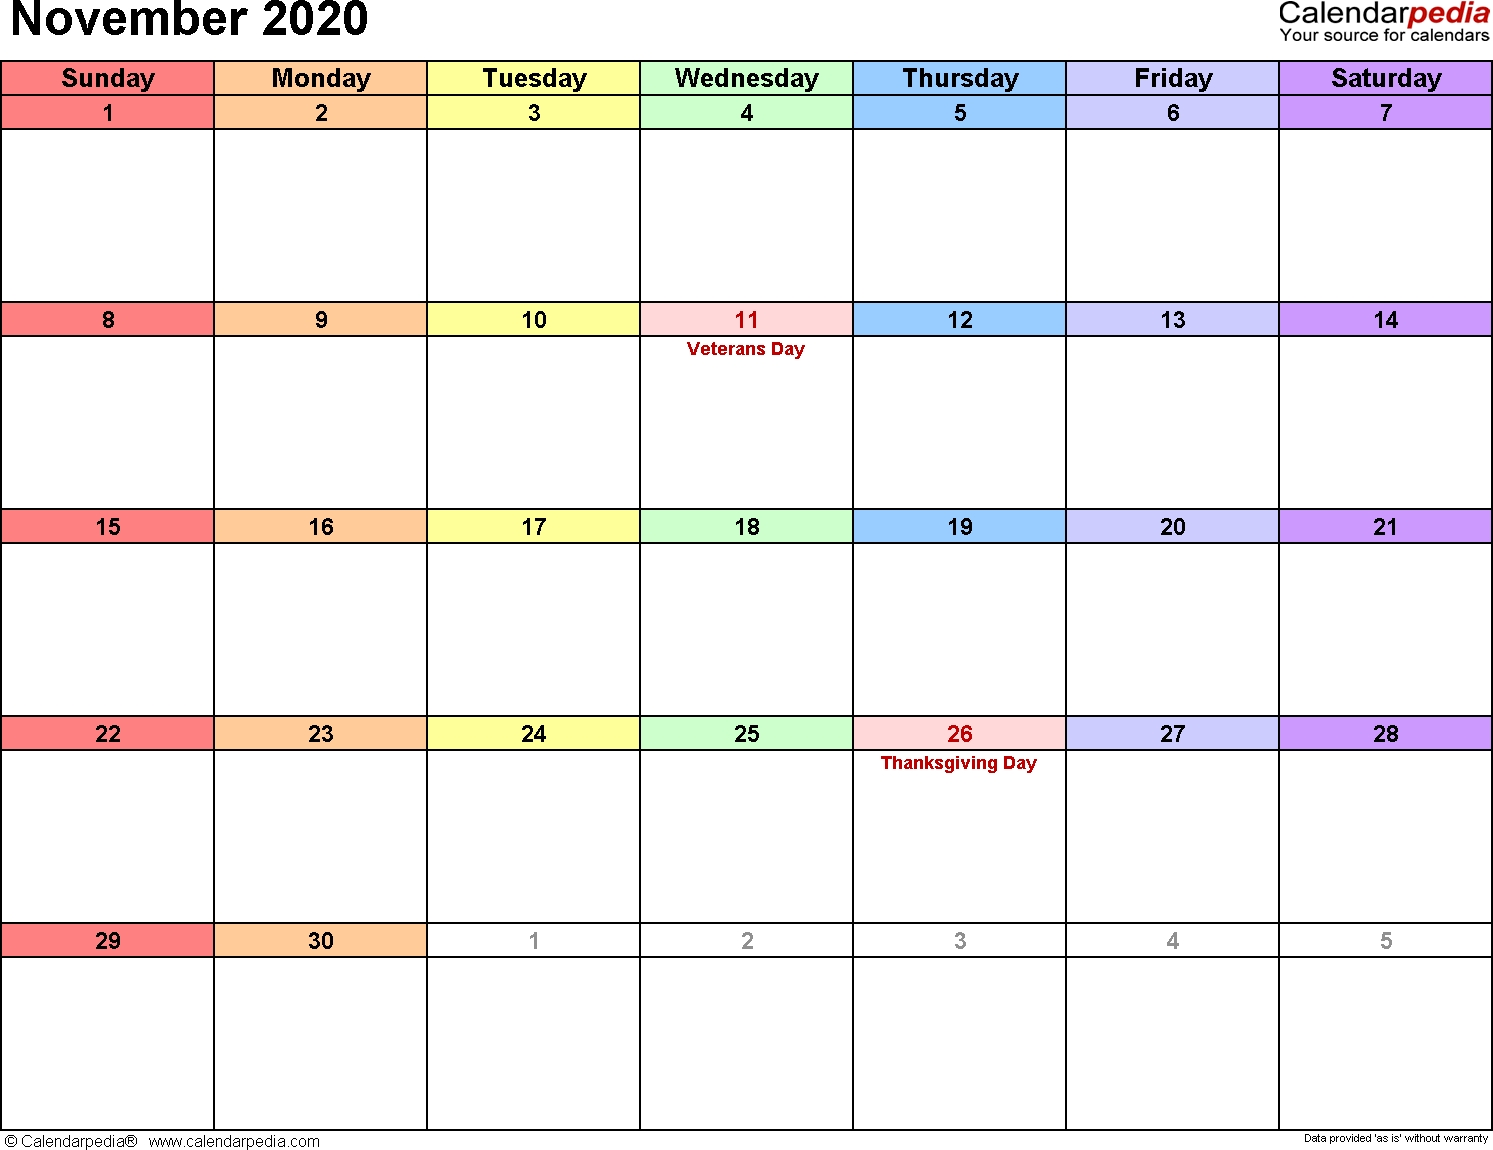 November 2020 Calendars For Word, Excel & Pdf-January 2020 Calendar Printable Wincalendar